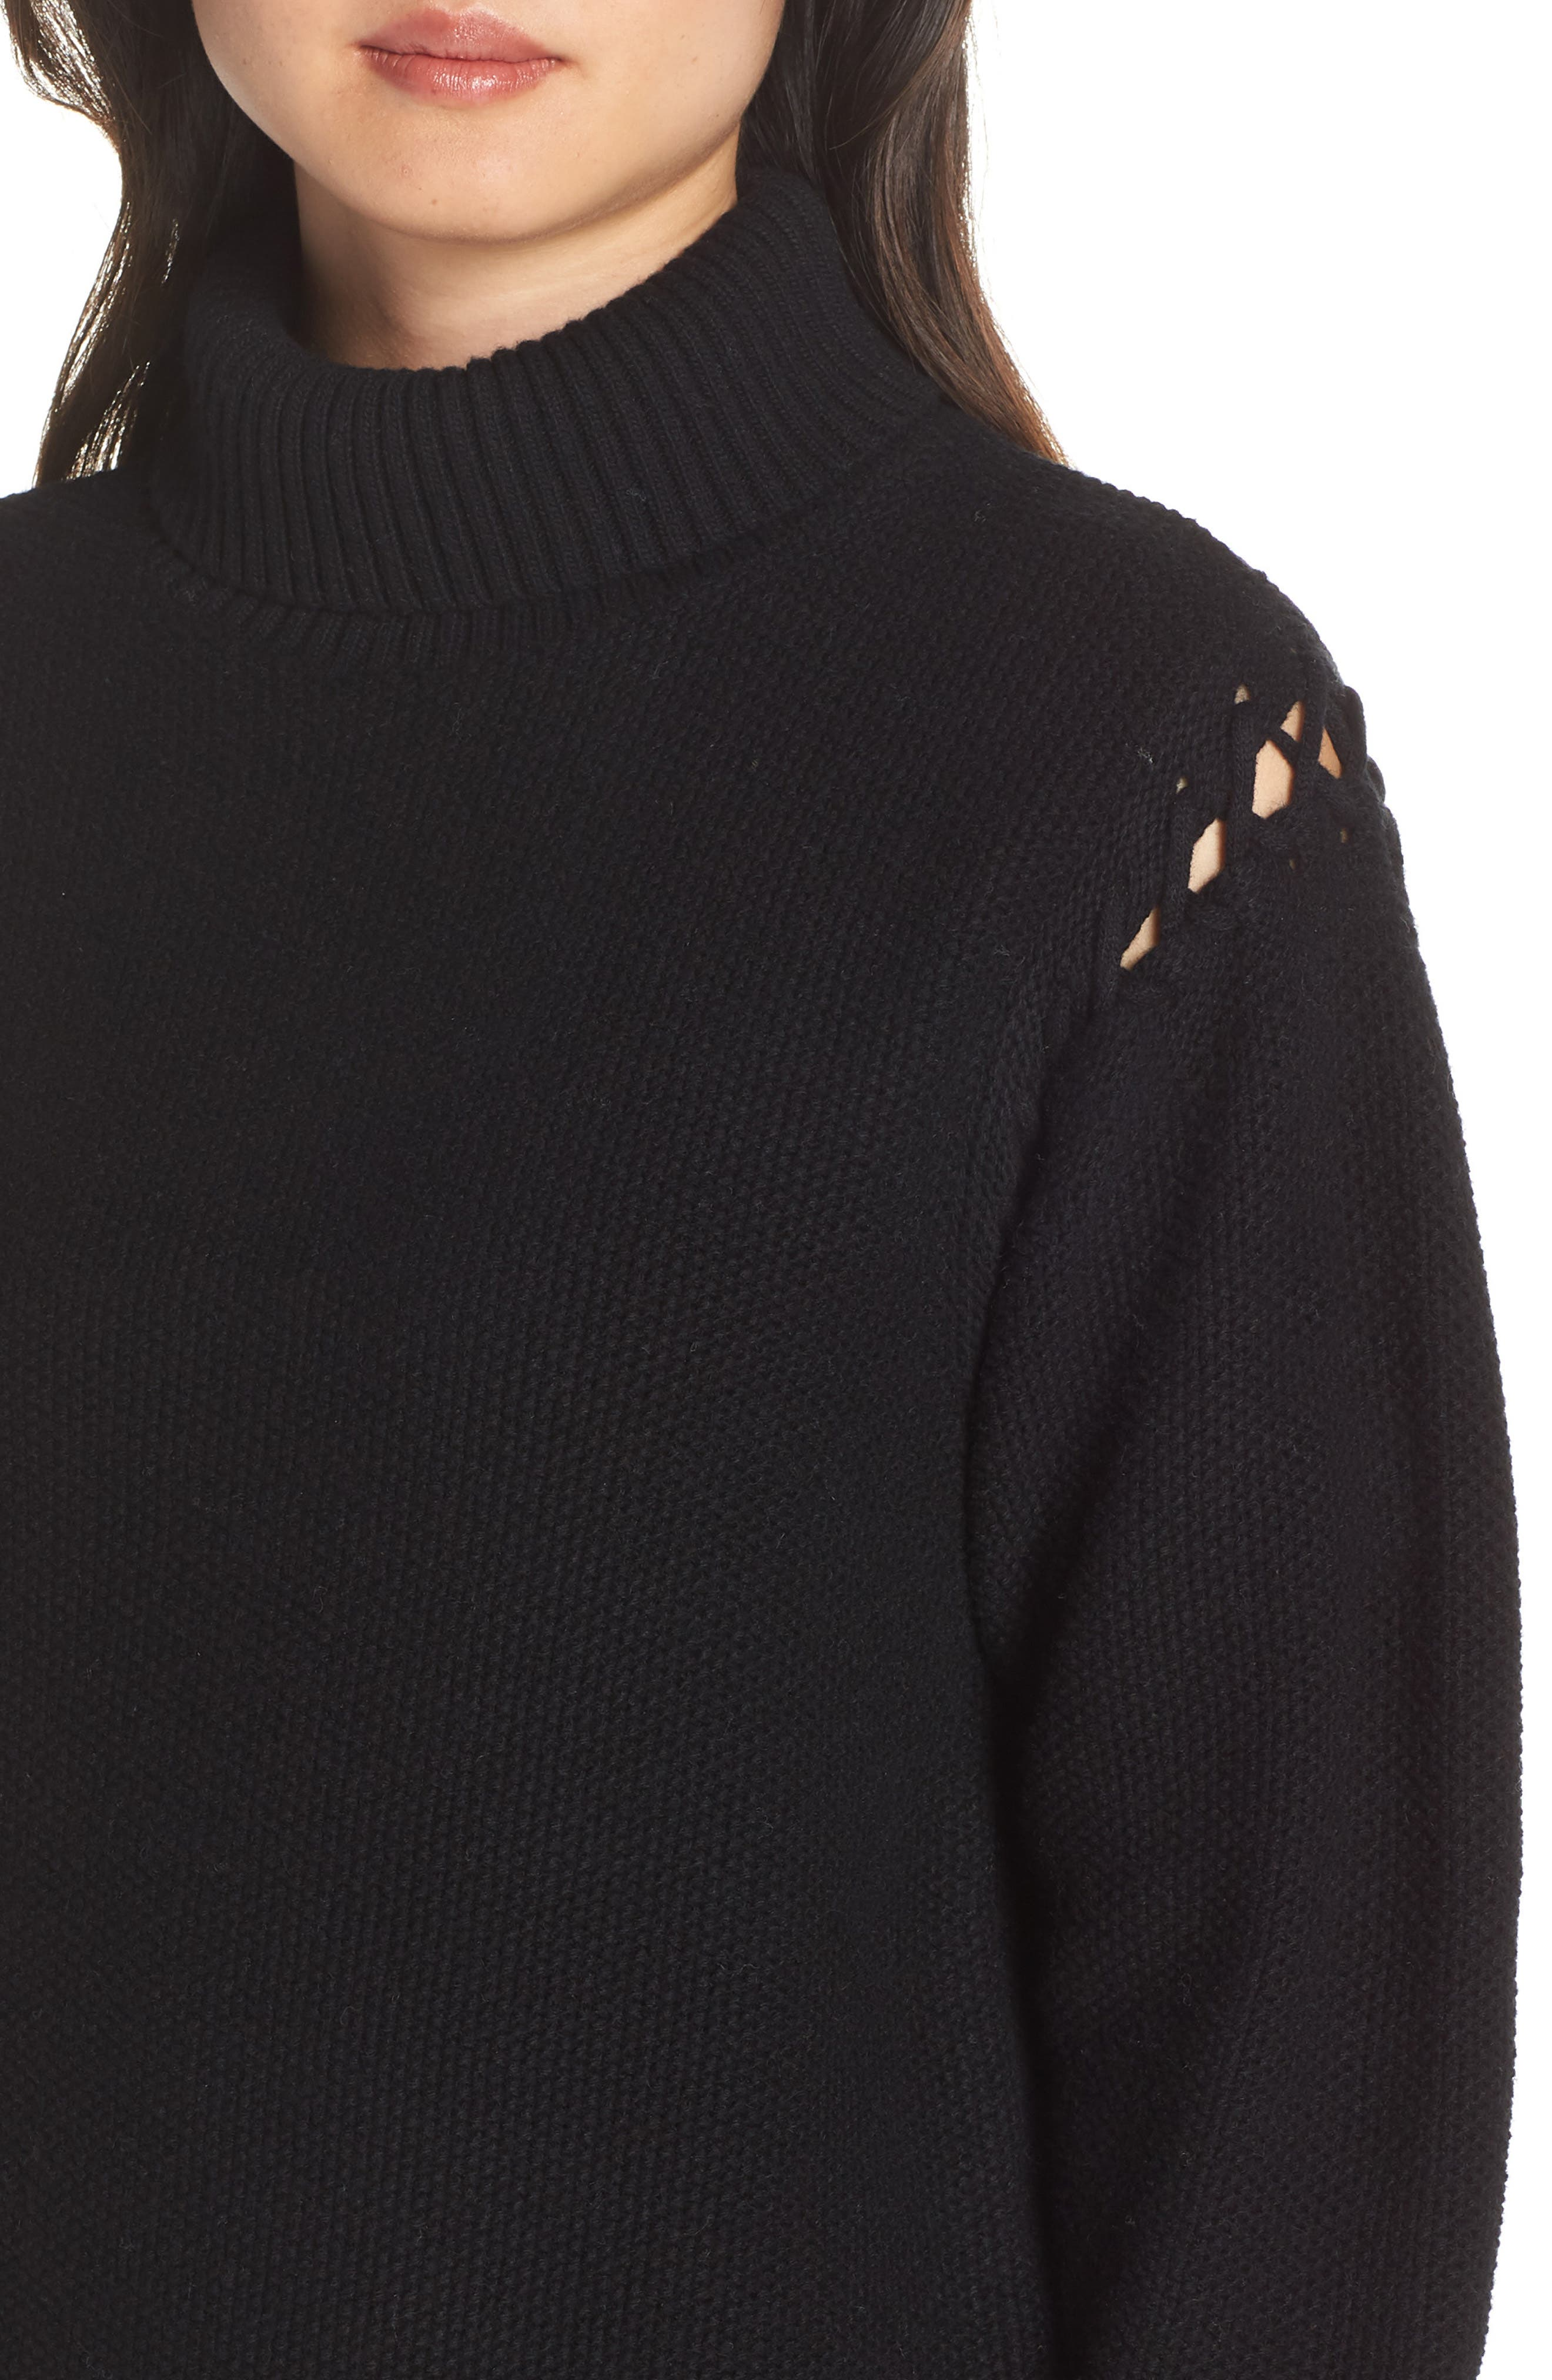 Gisele Turtleneck Sweater,                             Alternate thumbnail 4, color,                             BLACK